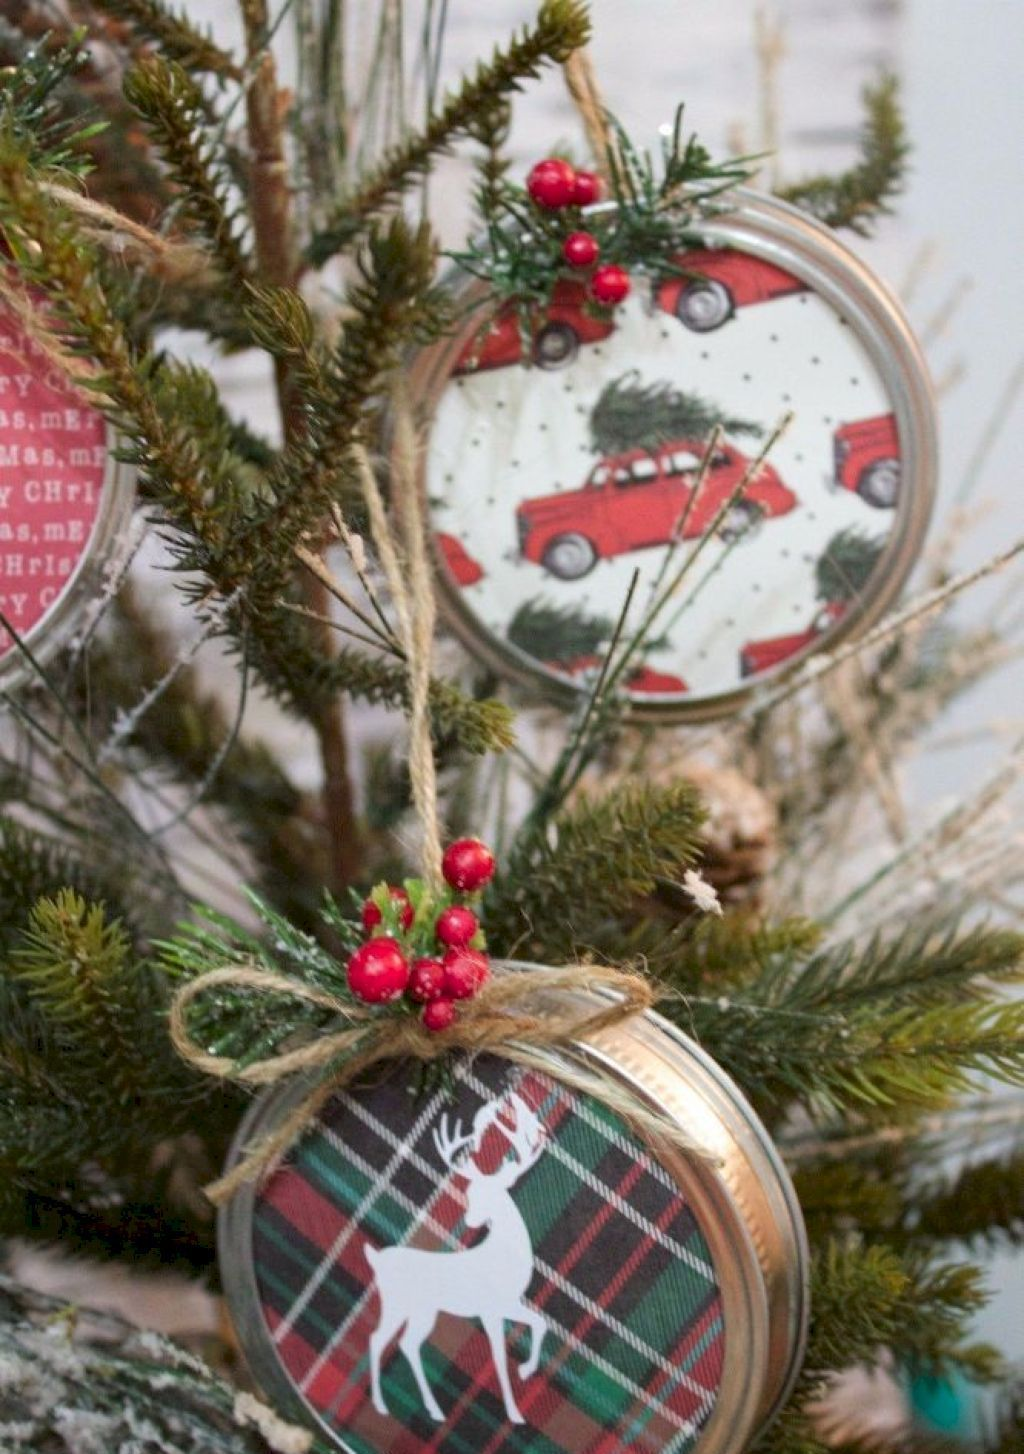 Cool 40 Easy Diy Christmas Crafts And Decorations Ideas On A Bugdet Https Homeideas Co 1149 Christmas Crafts Christmas Ornaments Christmas Decorations Rustic